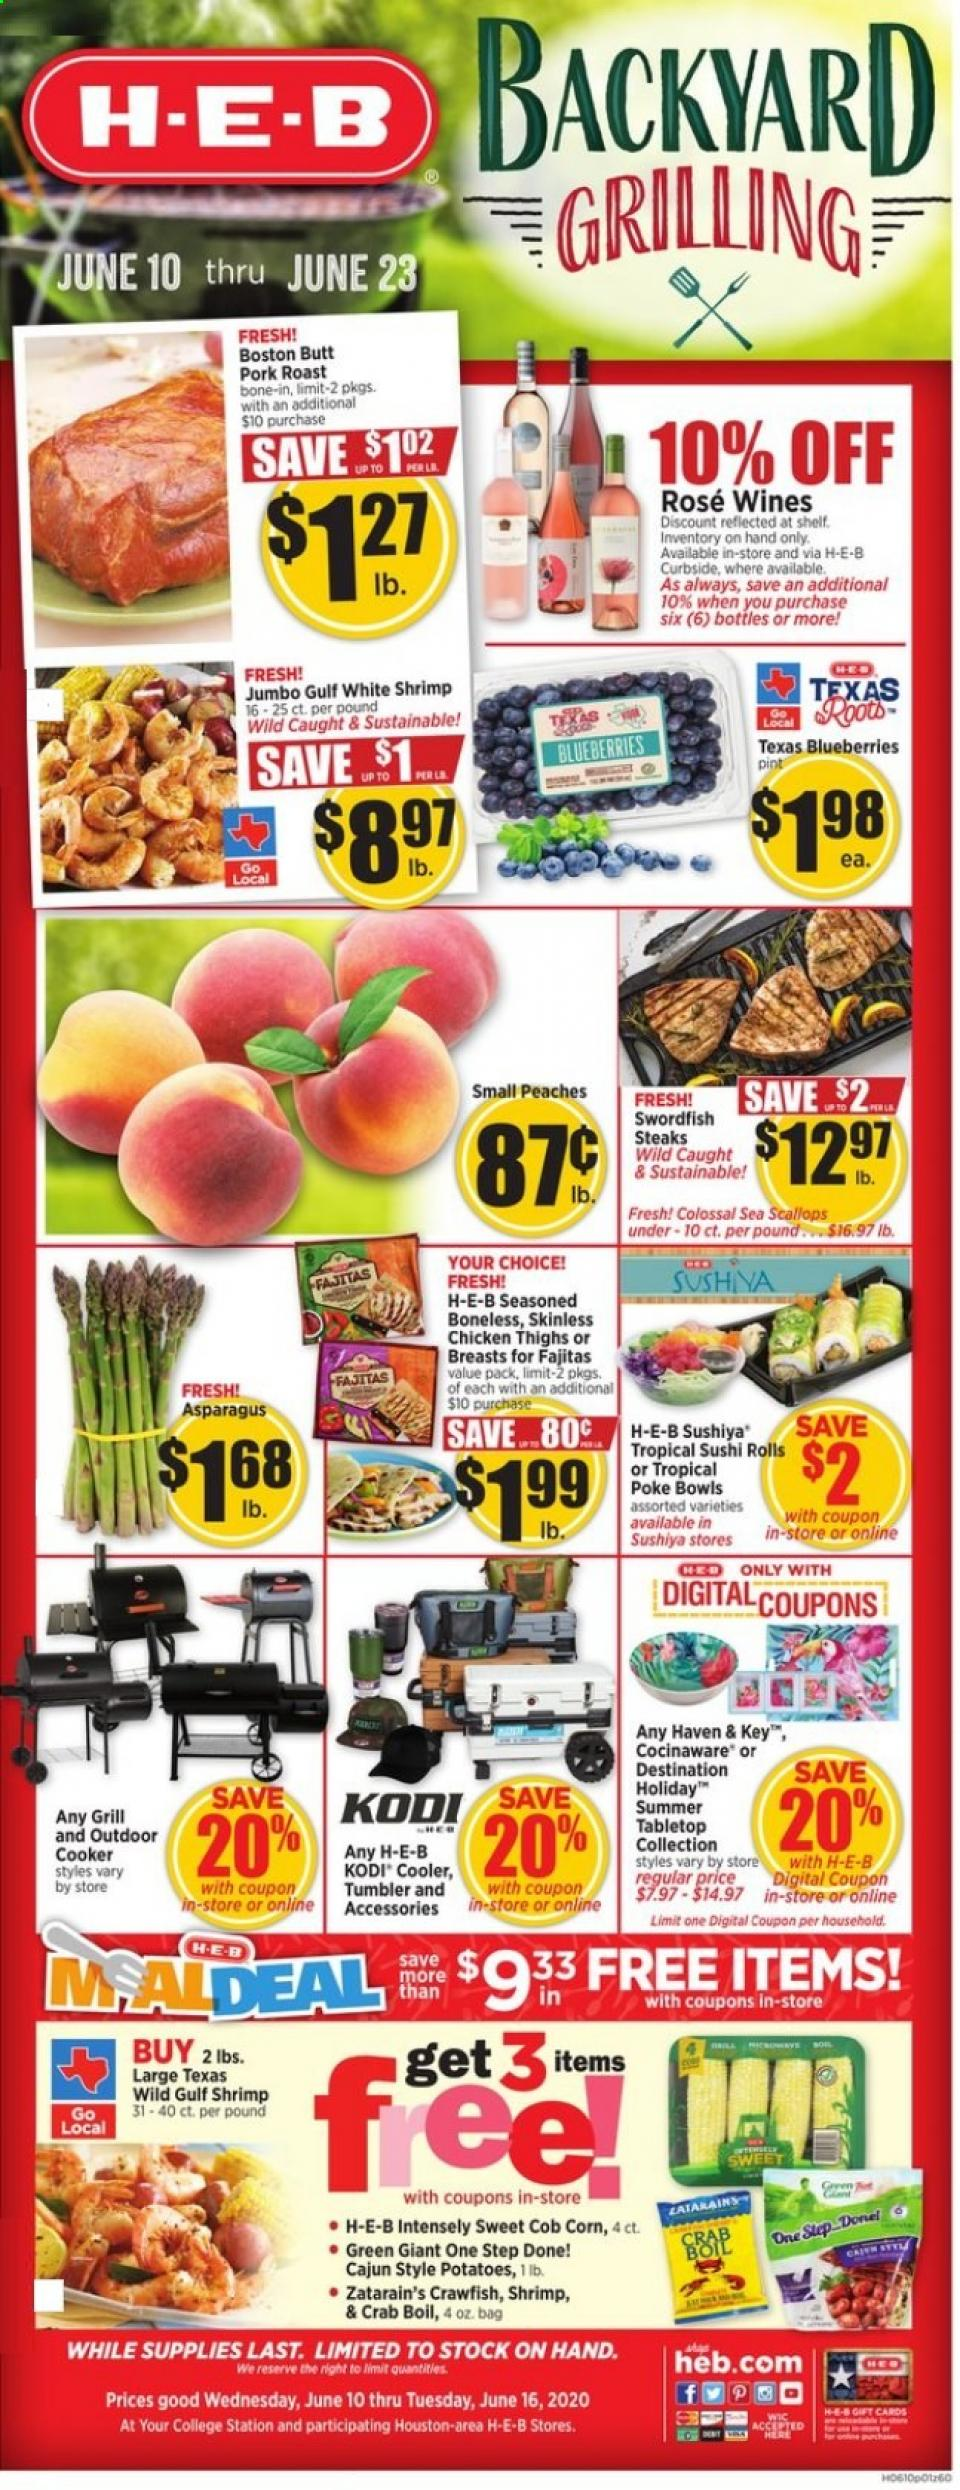 HEB Backyard Grilling June Weekly Ad valid from Jun 10 – 16, 2020